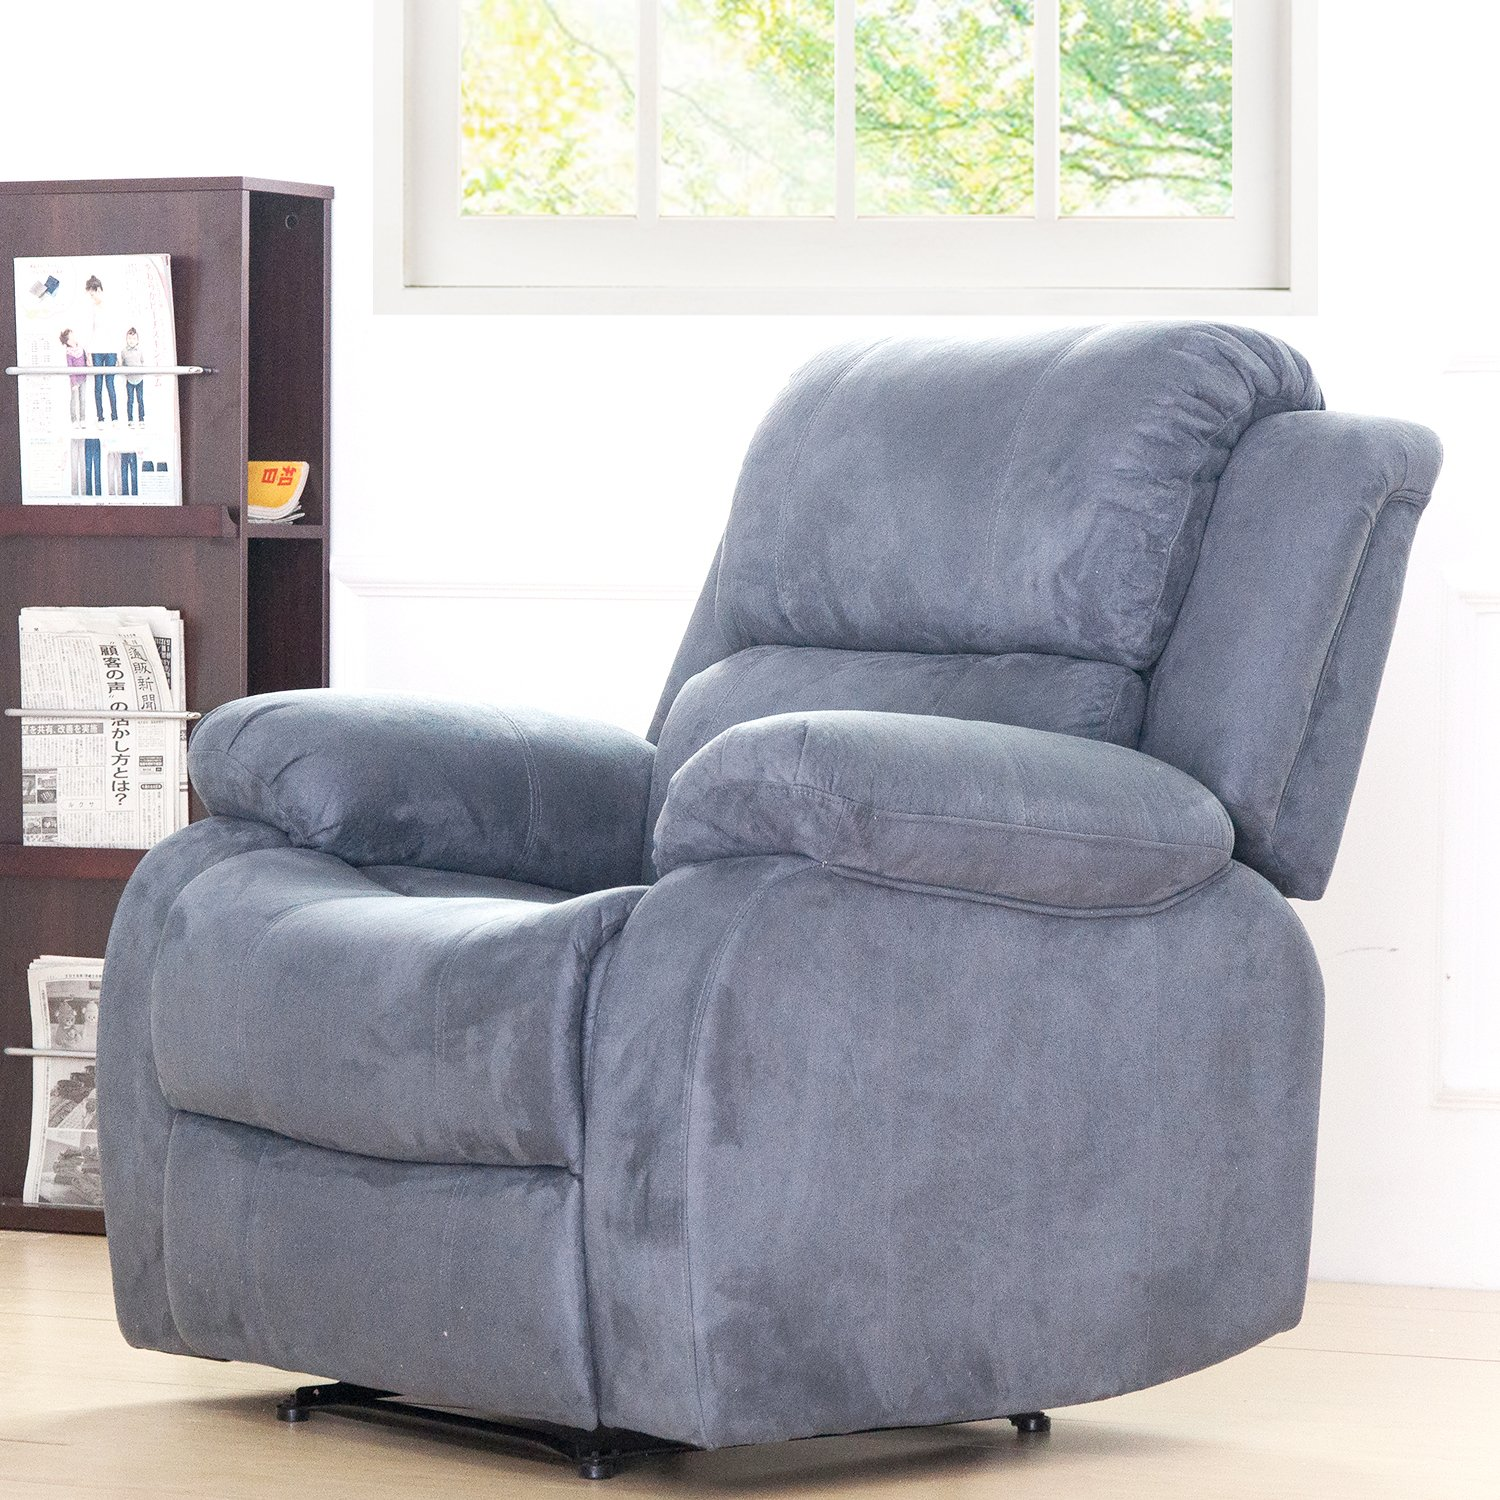 Merax Suede Heated Massage Recliner Sofa Chair Ergonomic Lounge with 8 Vibration Motors, Grey by Merax (Image #7)